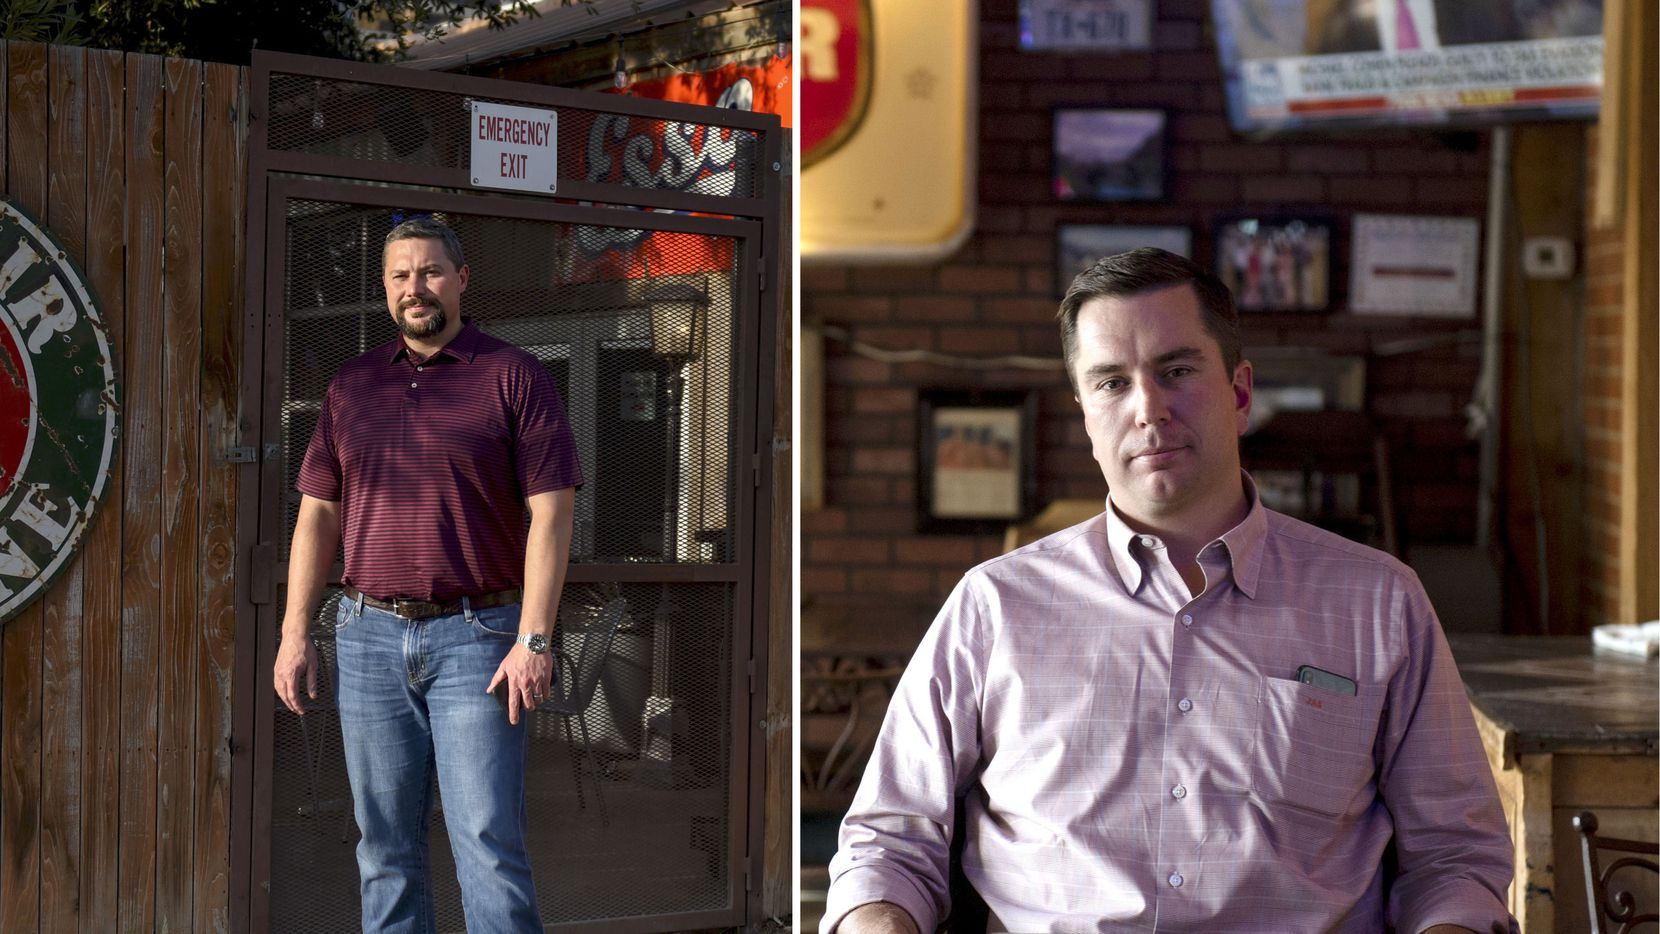 John Sellers (left) and Cody Campbell, co-chief executive officers and co-founders of Double Eagle Energy III Holdings LLC, photographed at an oil-themed bar in Midland.